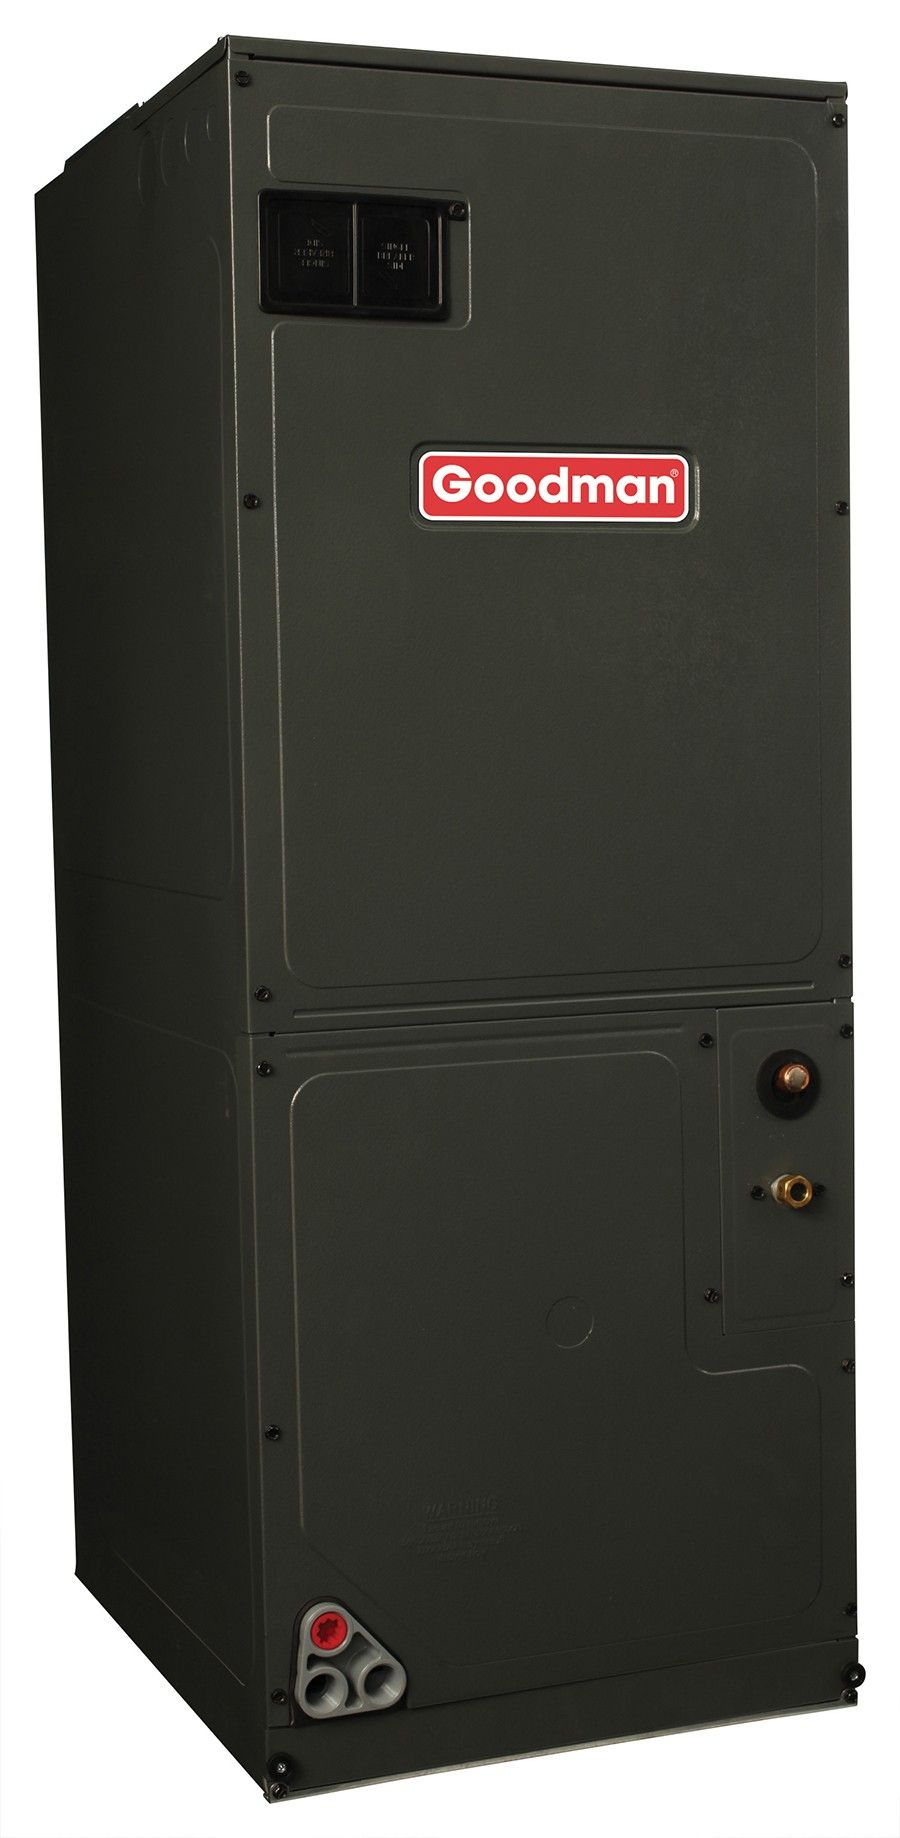 5.0 Ton Goodman AVPTC Variable Speed Air Handler